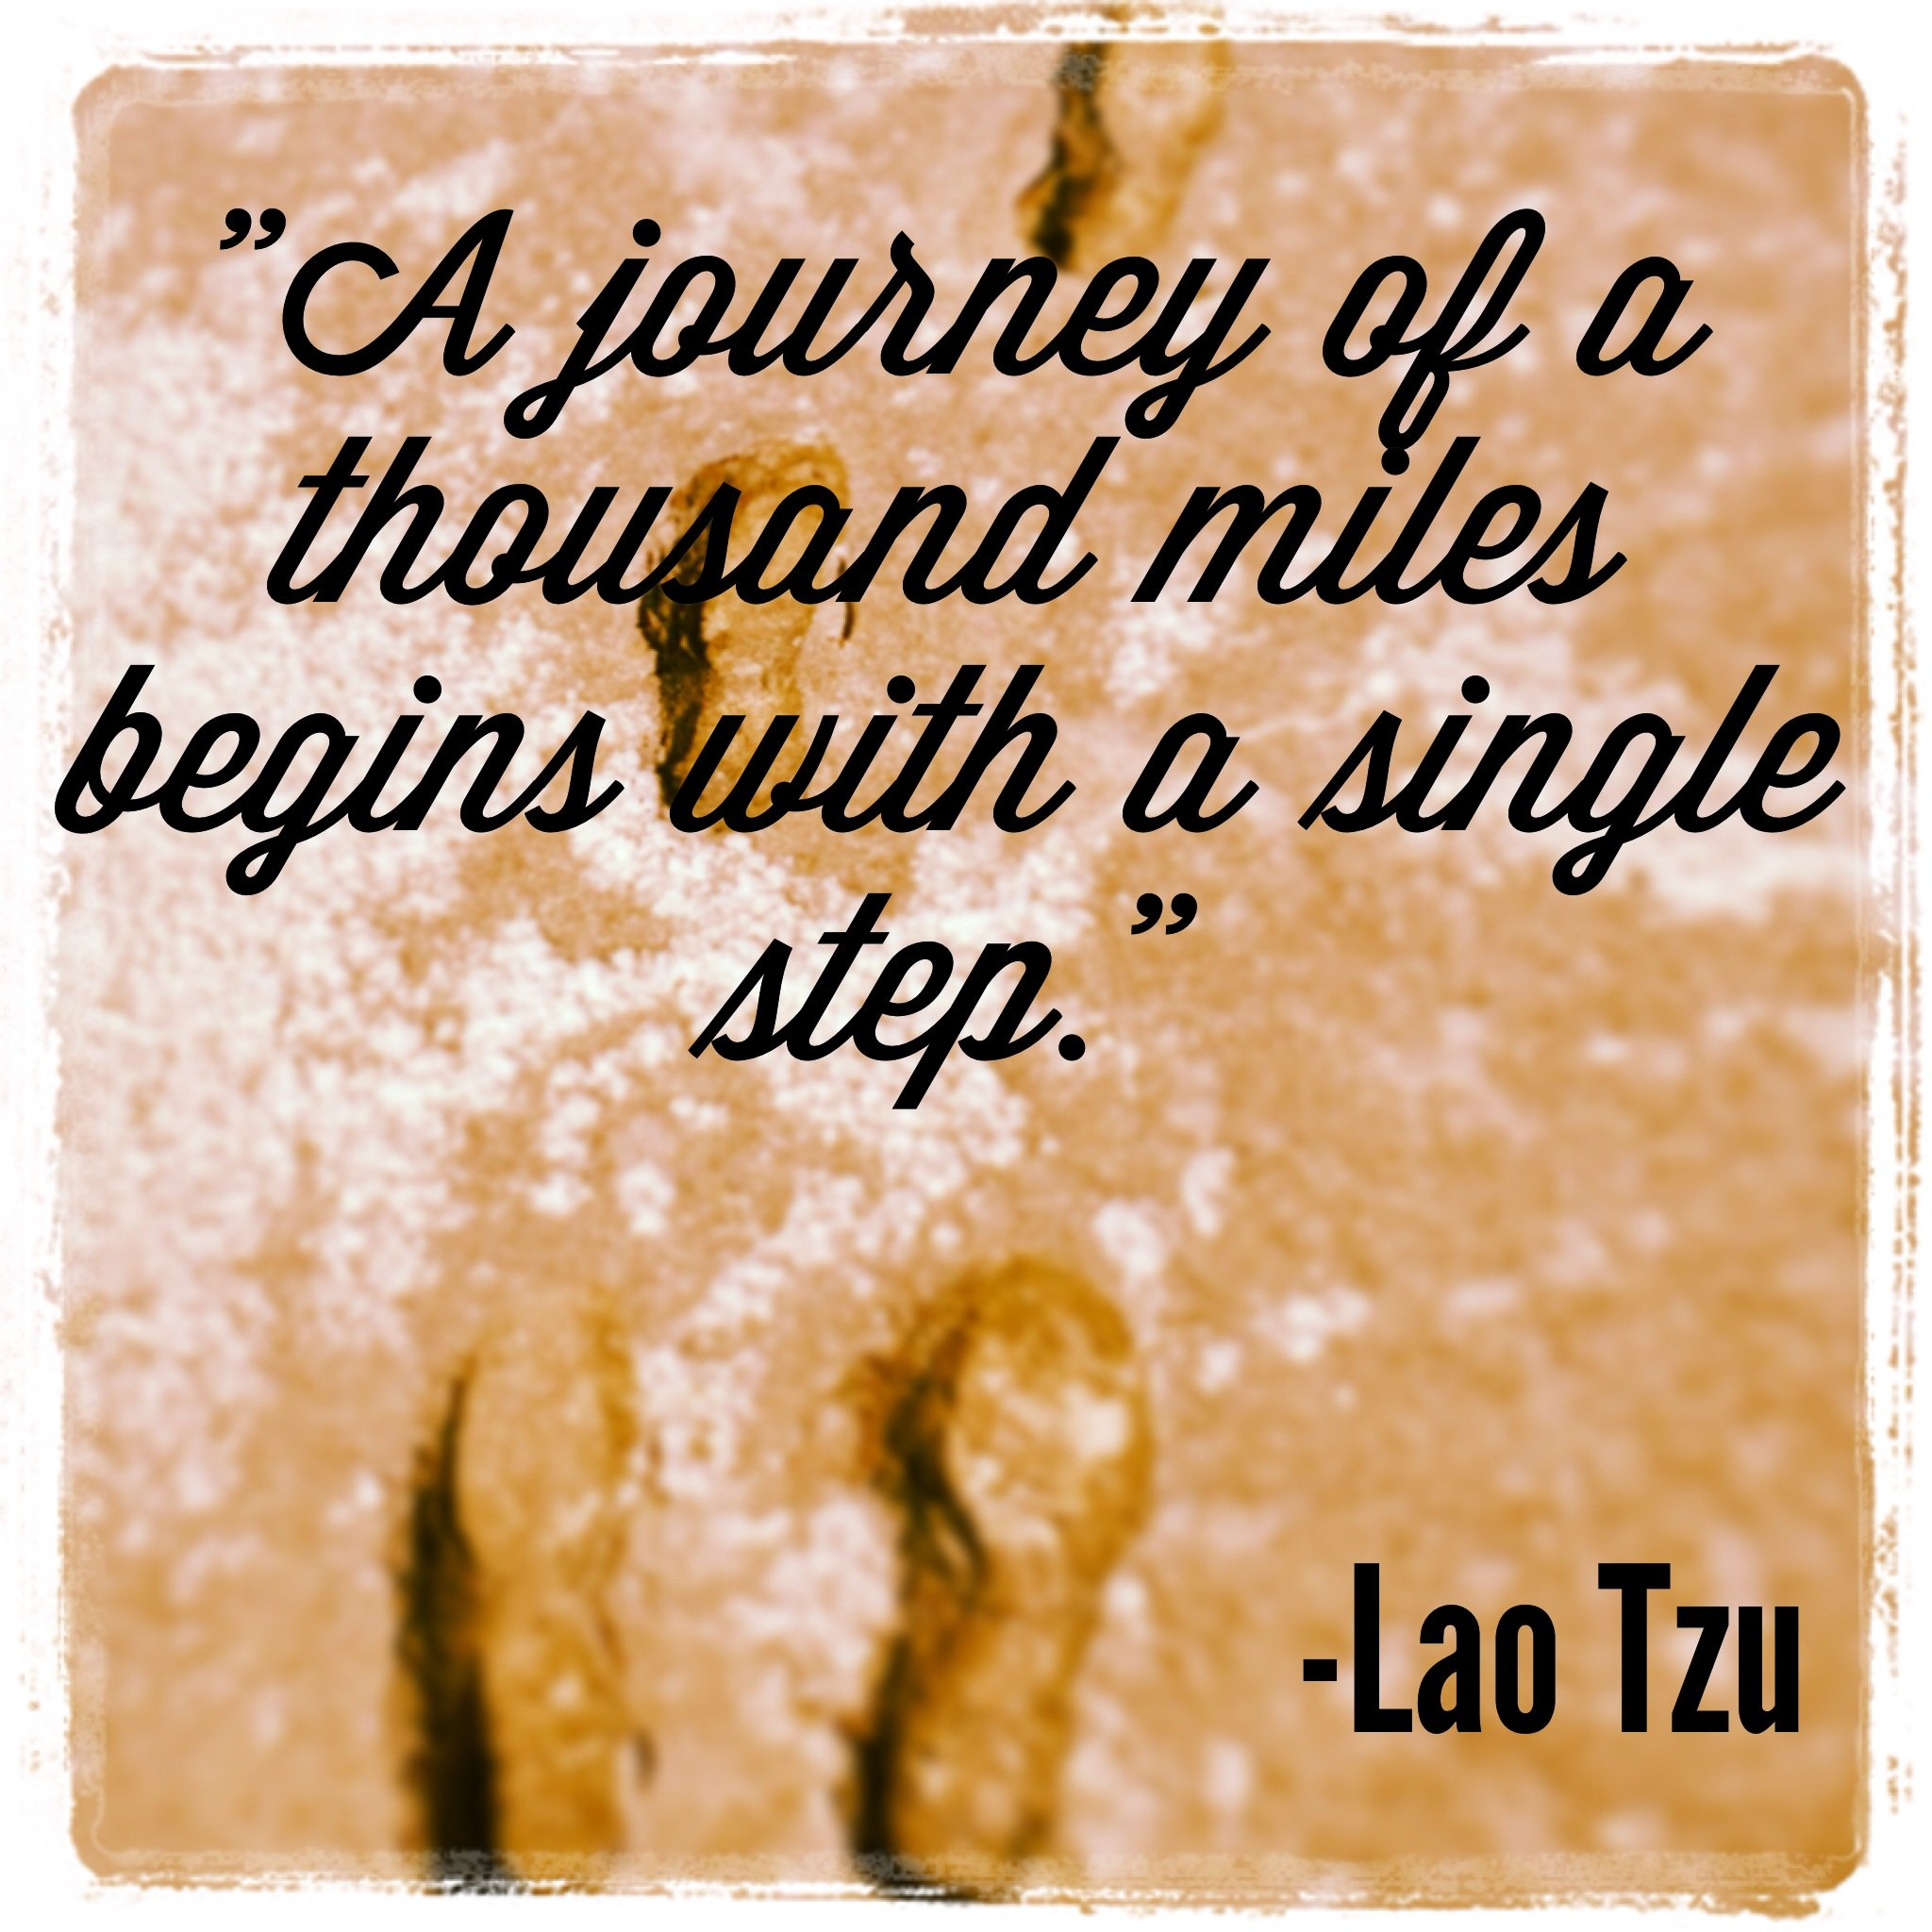 abortion and lao tzu's philosophy in Lao tzu's teachings about taoism is that it requires man to be in harmony with nature, to understand the concept of yin and yang and to let the course of nature continue and not interfere.